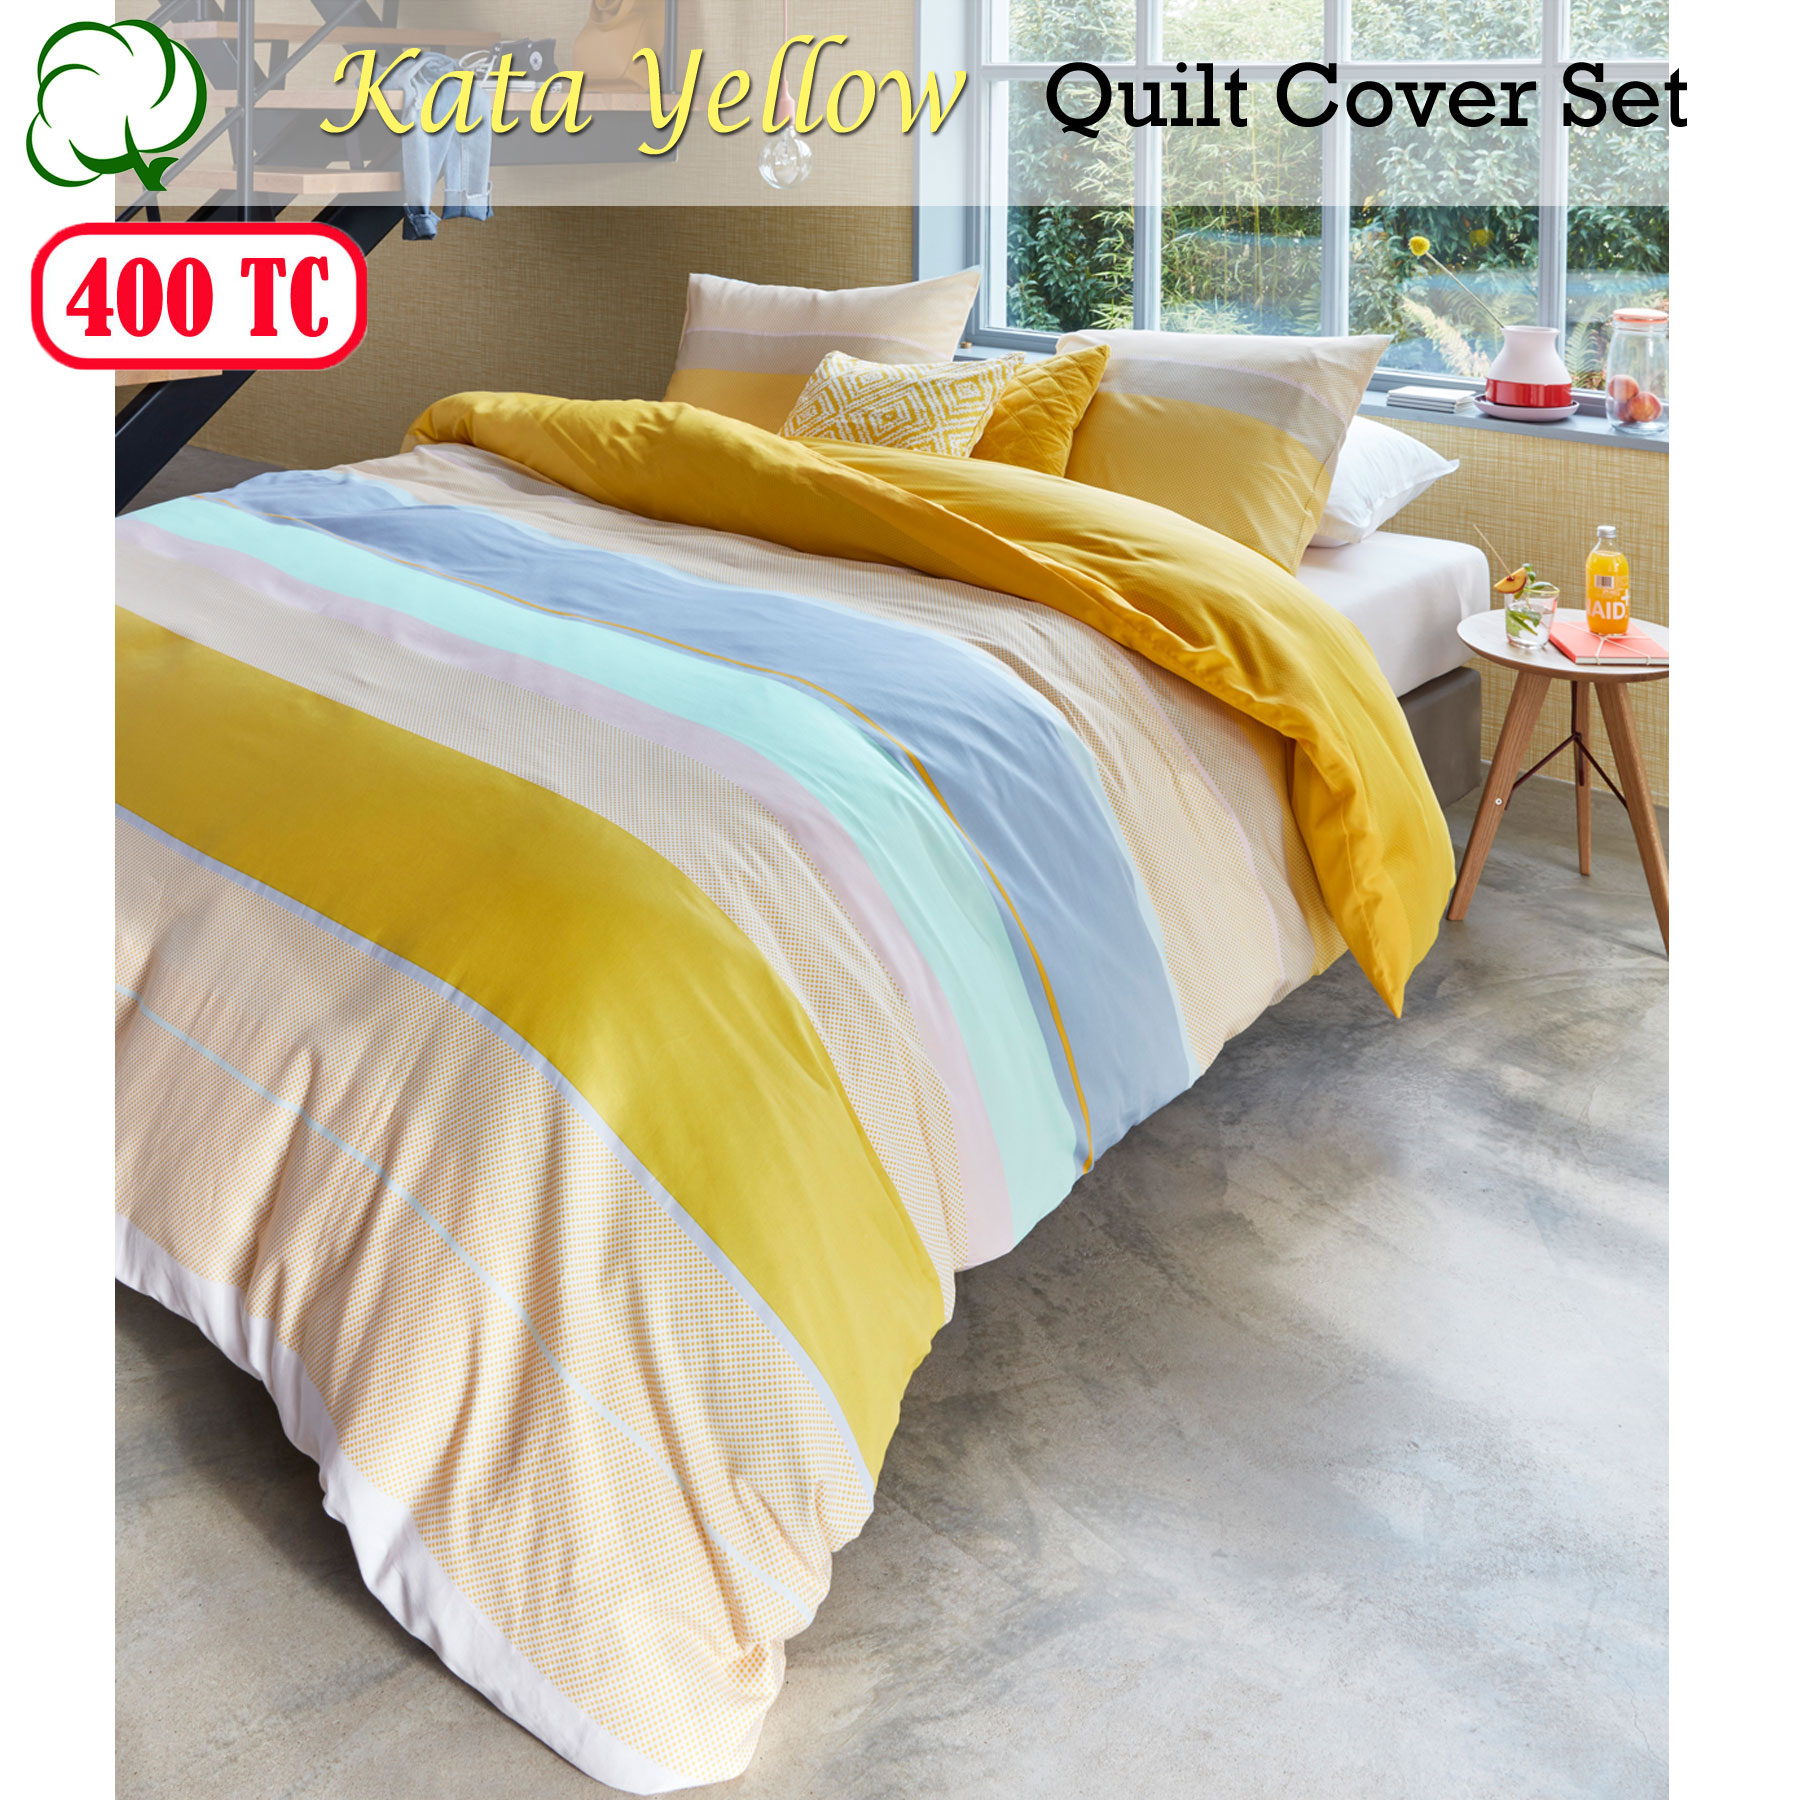 bedding king yellow covers sunset yoga sets product dovet queen bedspreads twin comforter printed pillow cal teens for full set boat cover duvet size